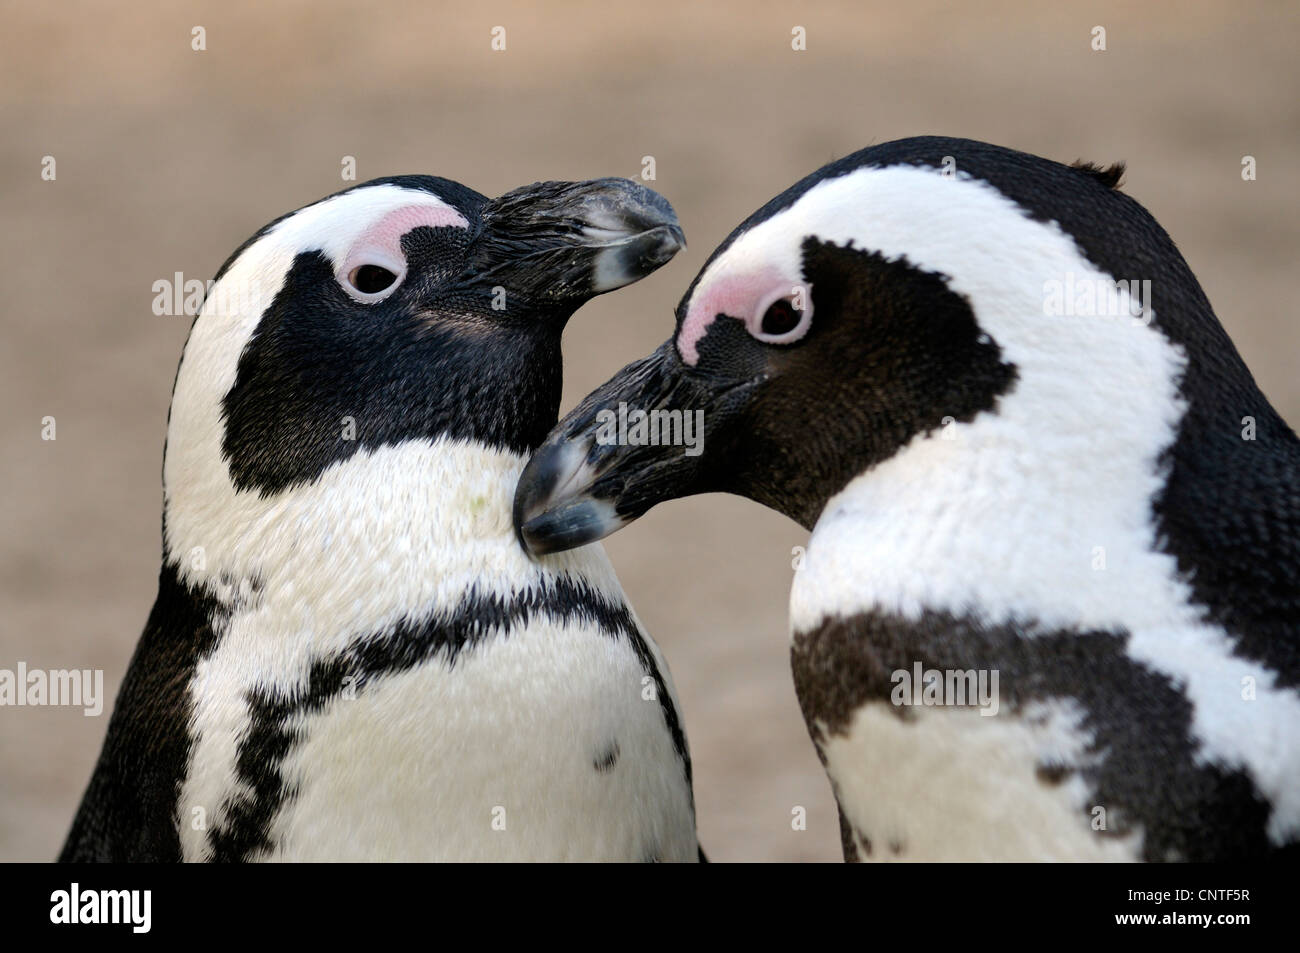 jackass penguin, African penguin, black-footed penguin (Spheniscus demersus), couple greeting - Stock Image